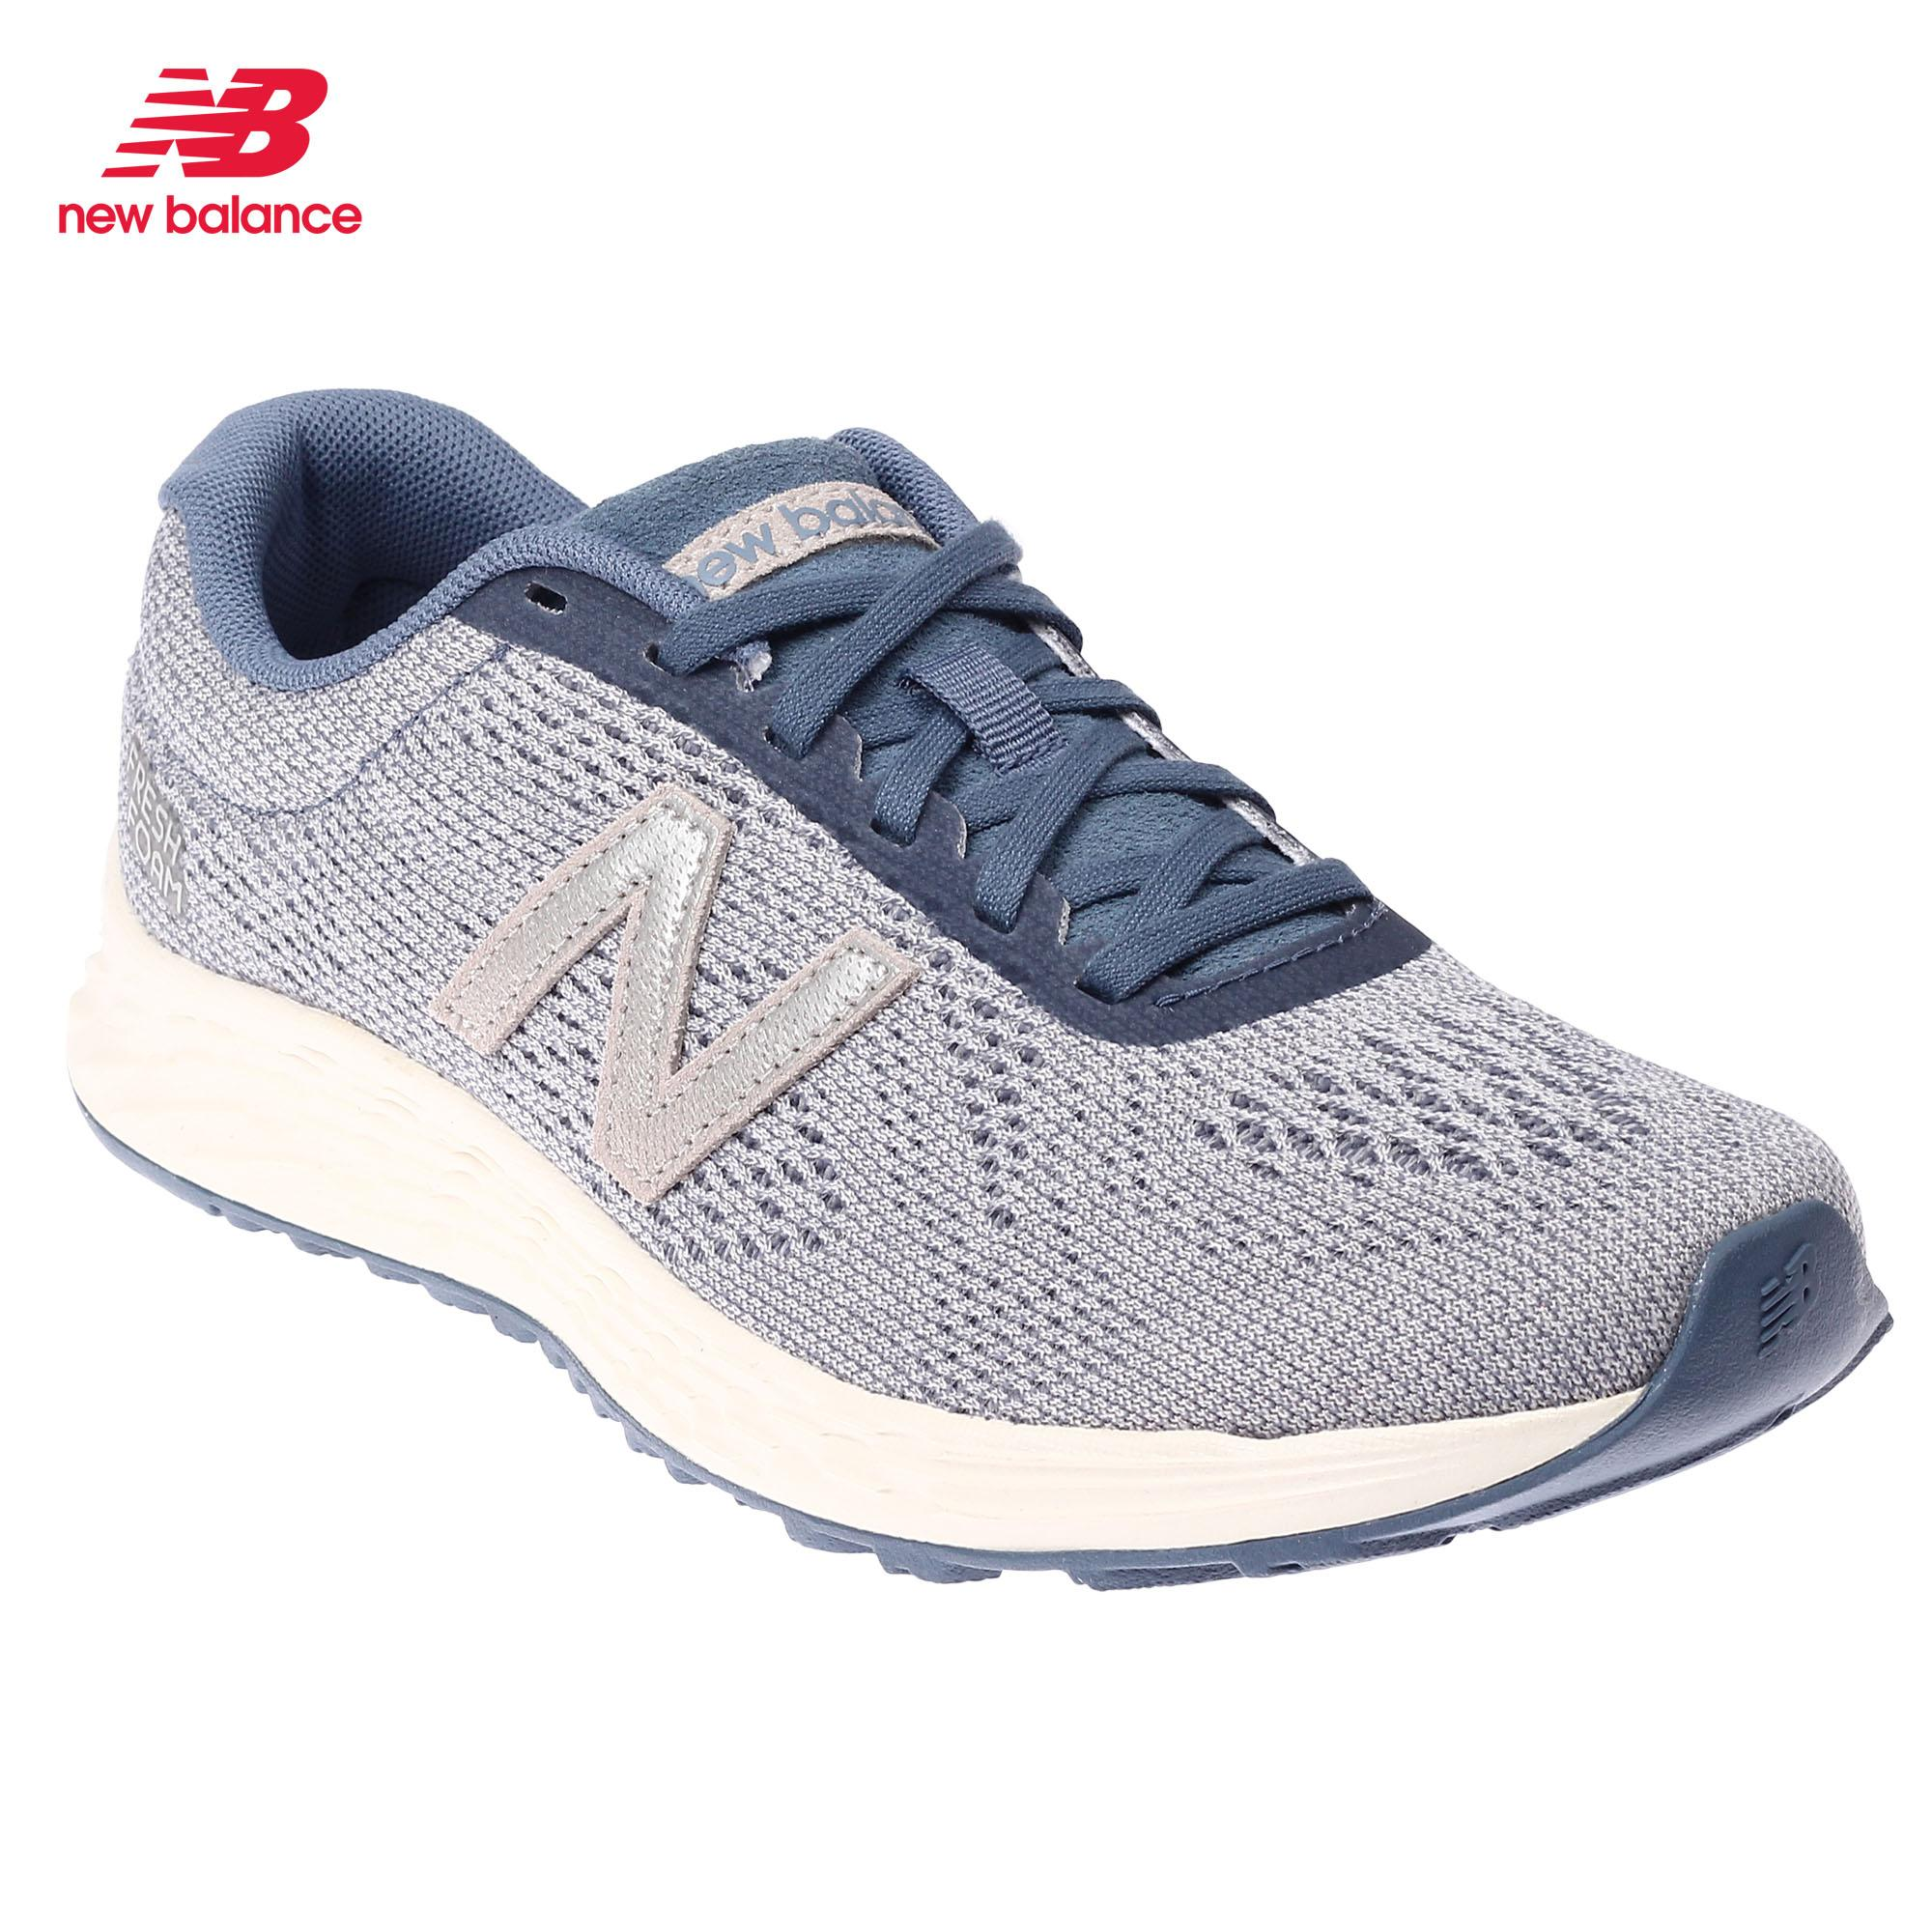 7ae697a2ed24 Running Shoes for Women for sale - Womens Running Shoes online ...